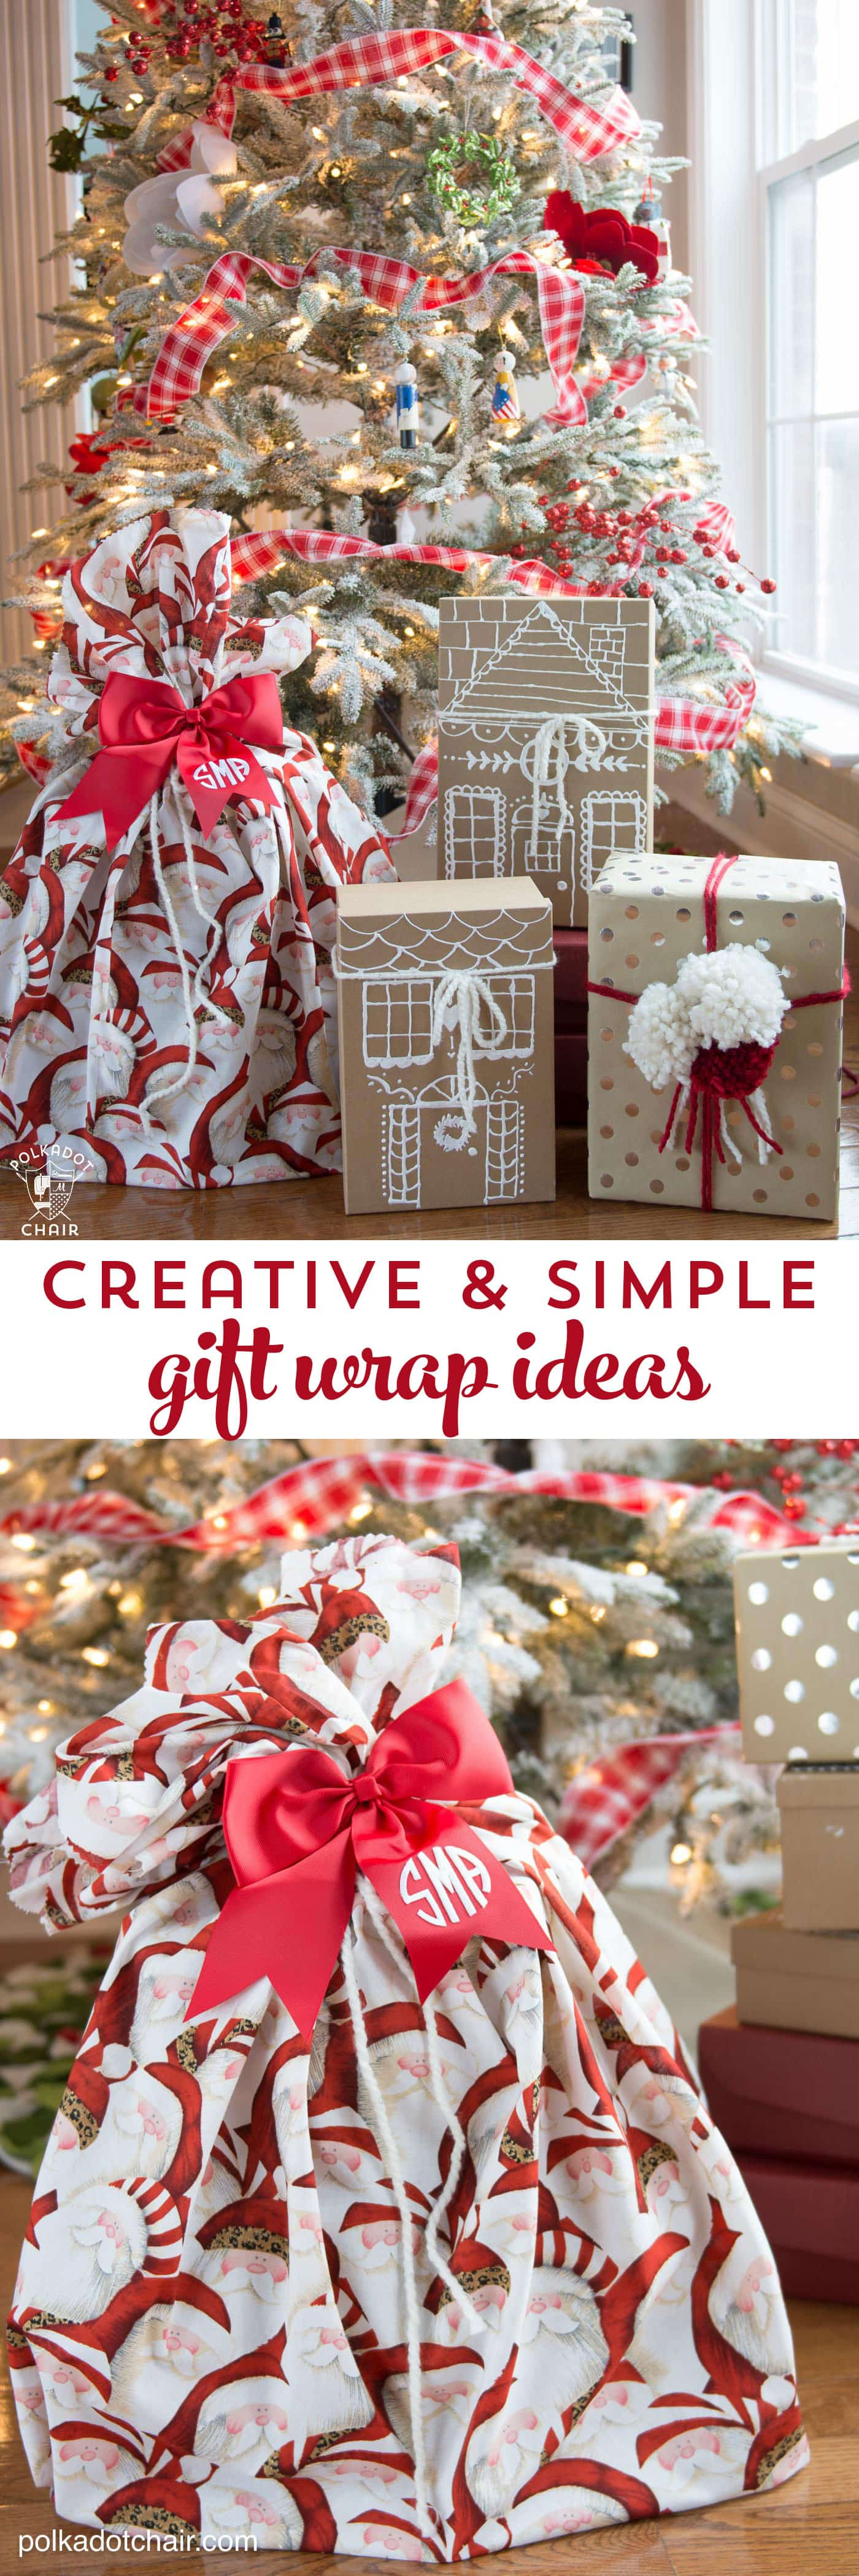 3 simple and creative gift wrap ideas the polka dot chair for Creative christmas ideas